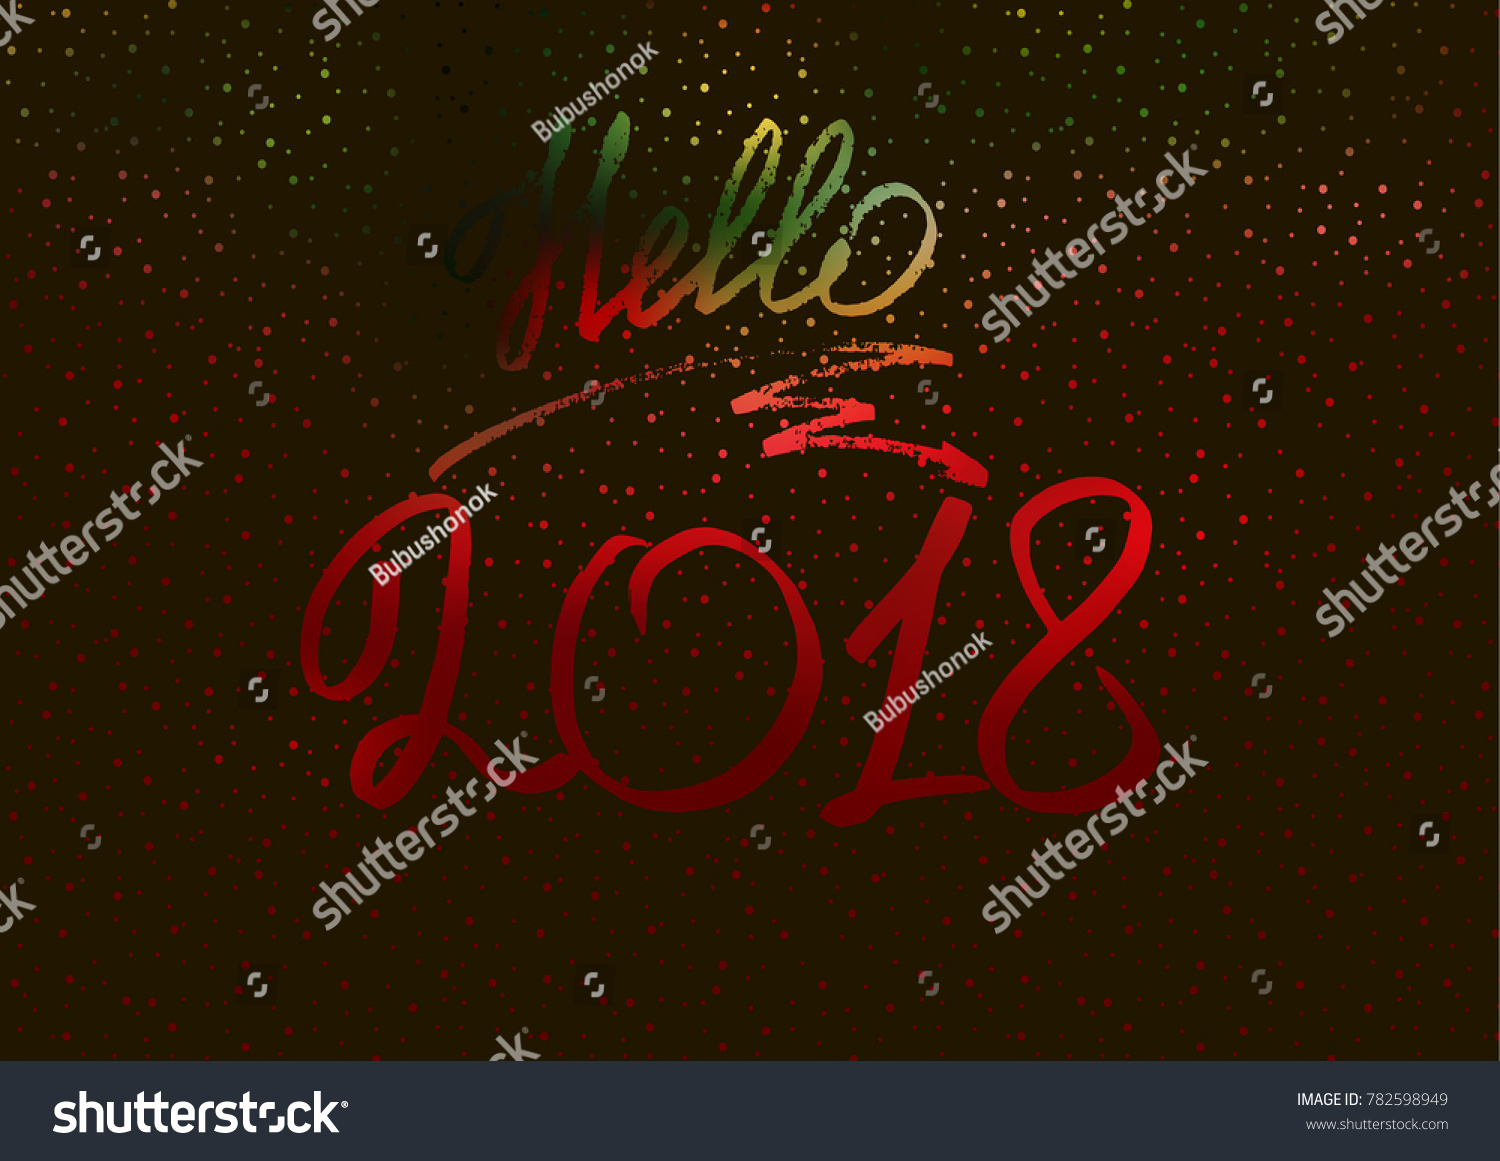 Hello 2018 new year 2018 new stock vector 782598949 shutterstock new years greeting card cover banner kristyandbryce Gallery